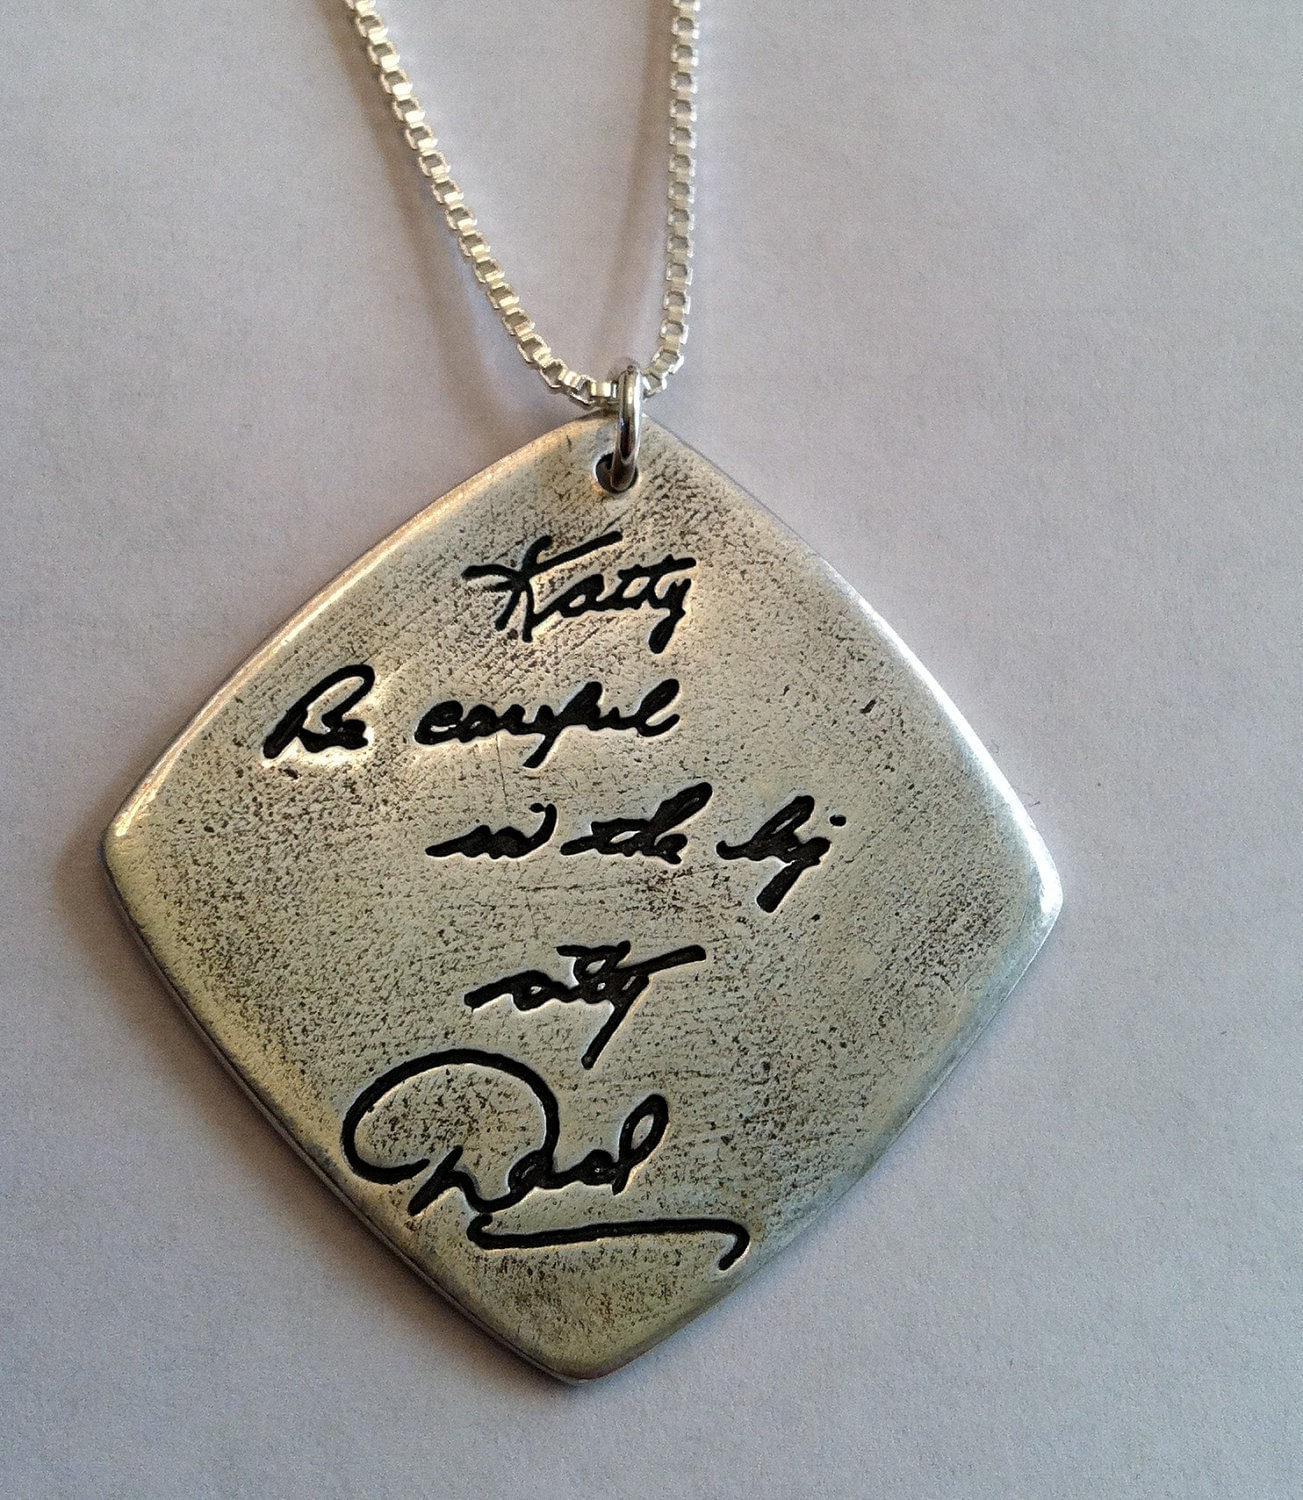 Double Sided Memorial Jewelry Your Actual Loved Ones Writing